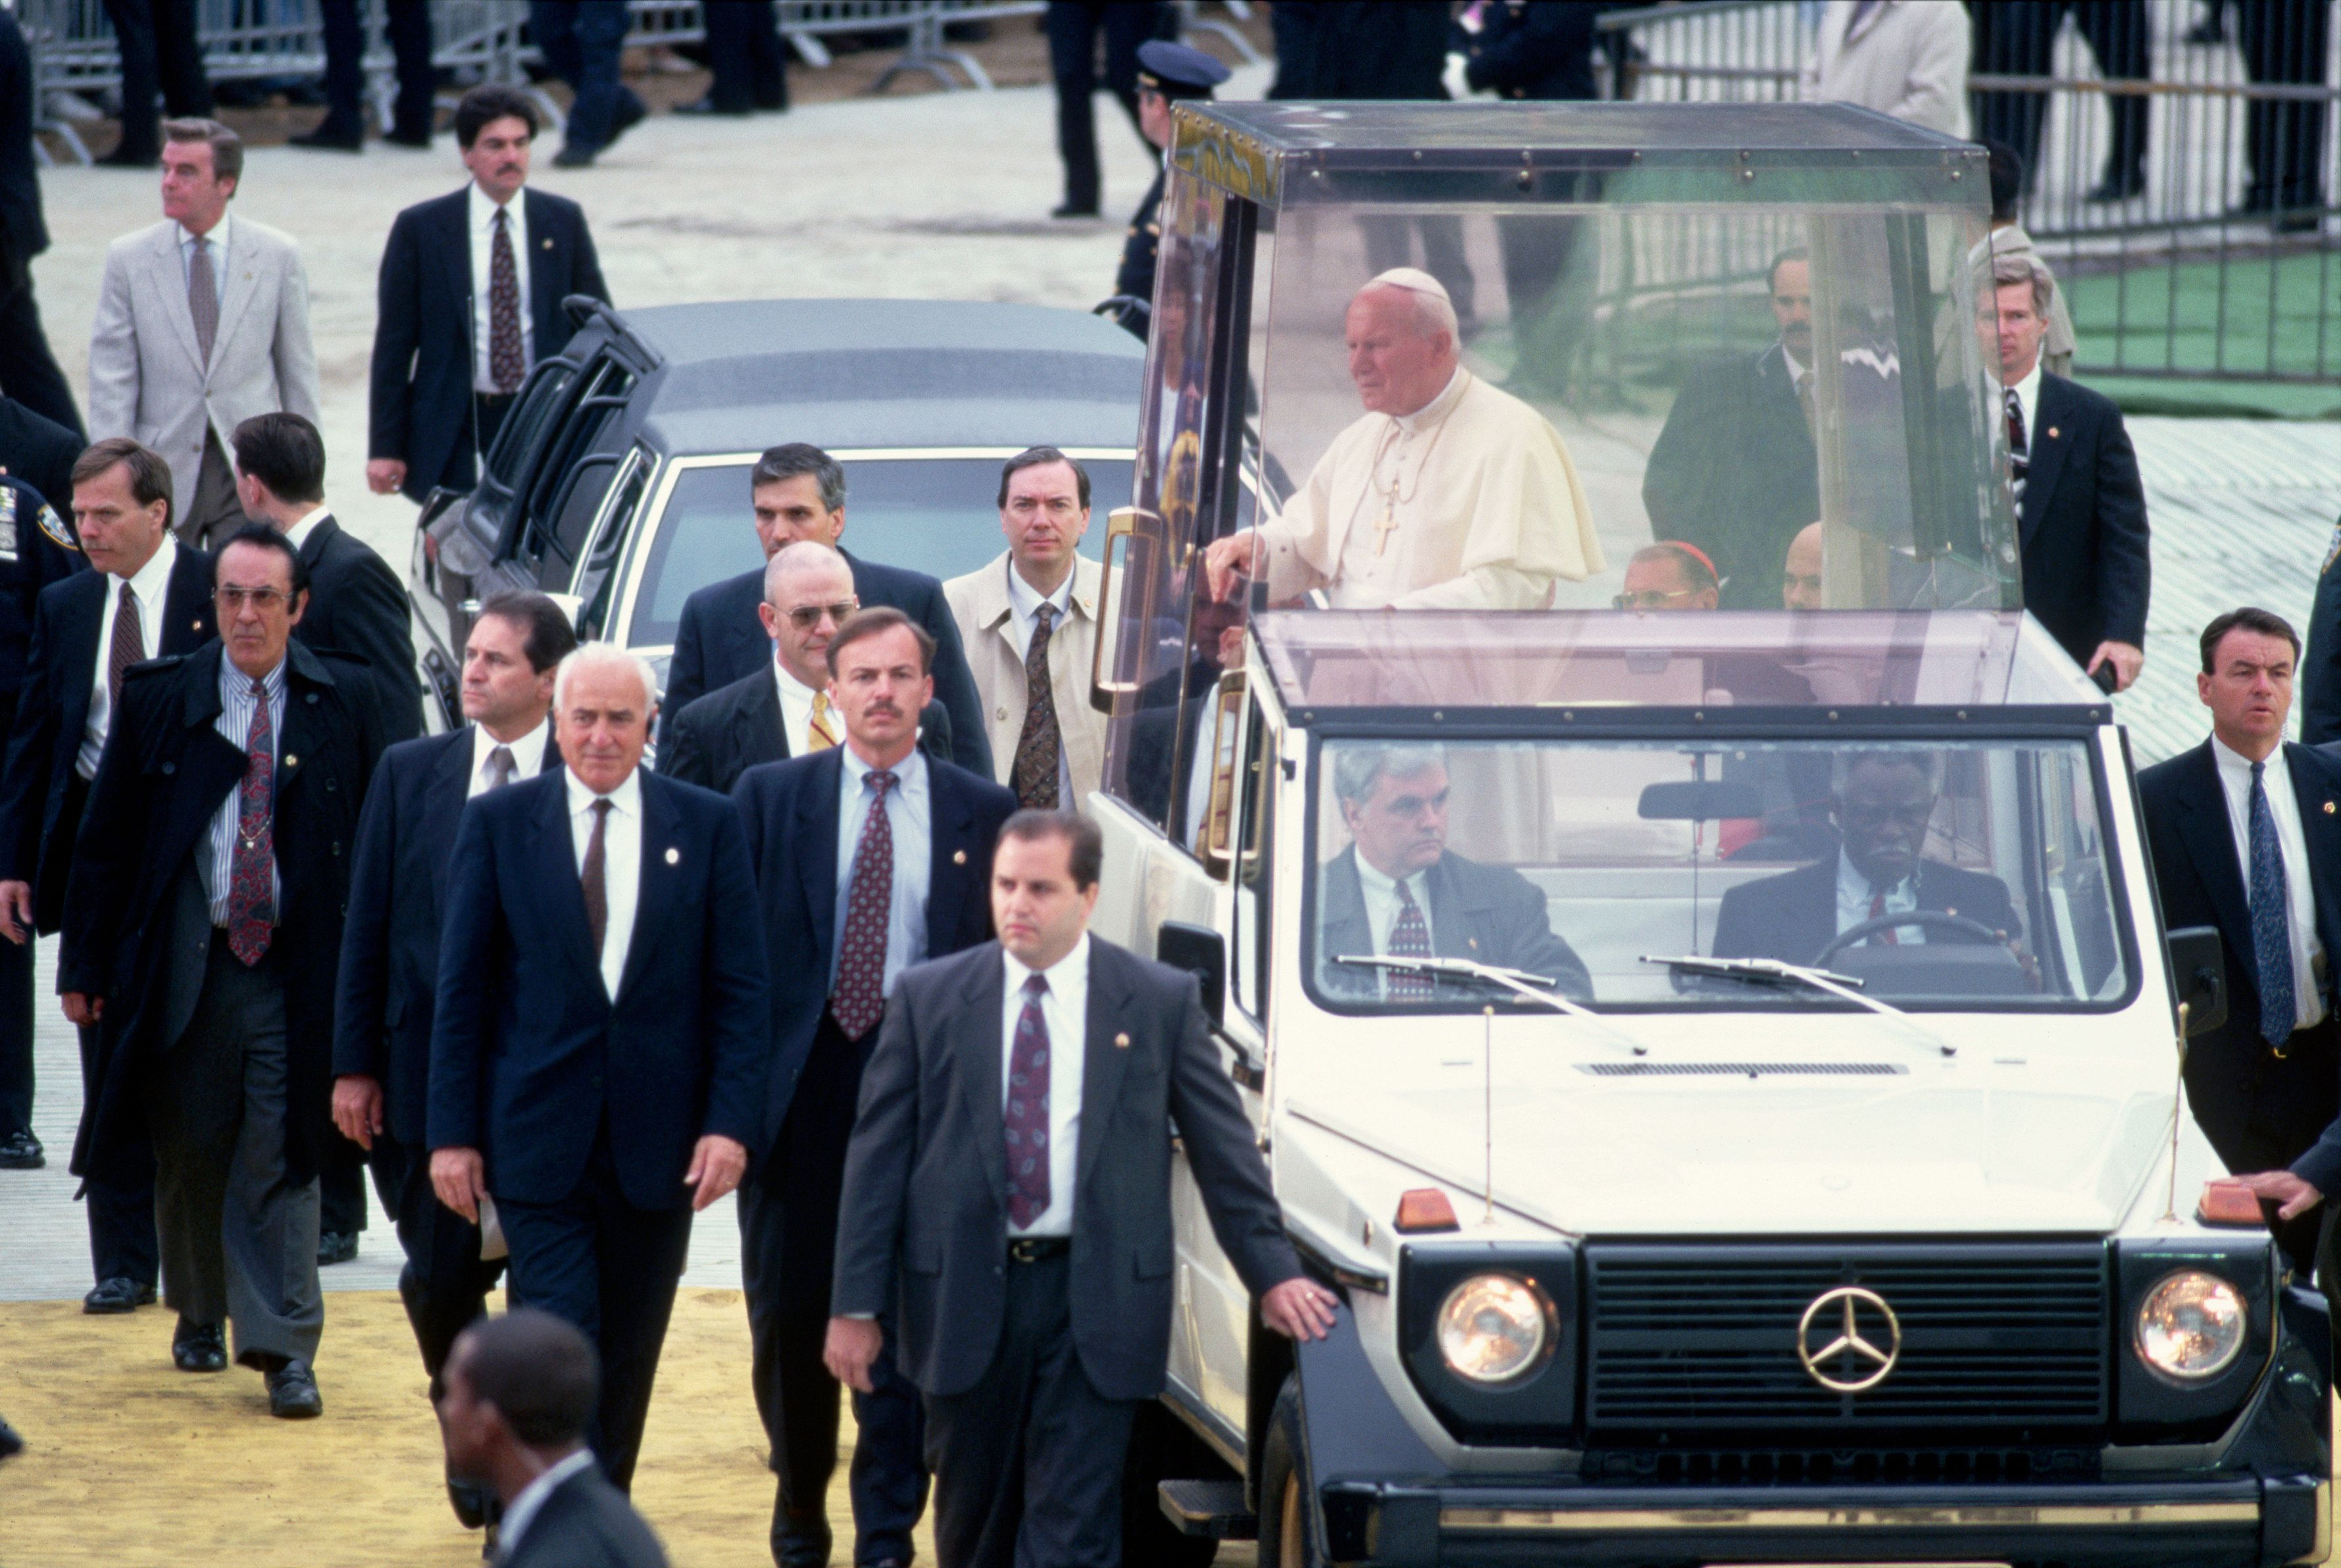 Surrounded by bodyguards, John Paul II enters Central Park in his bullet-proof truck. New York.